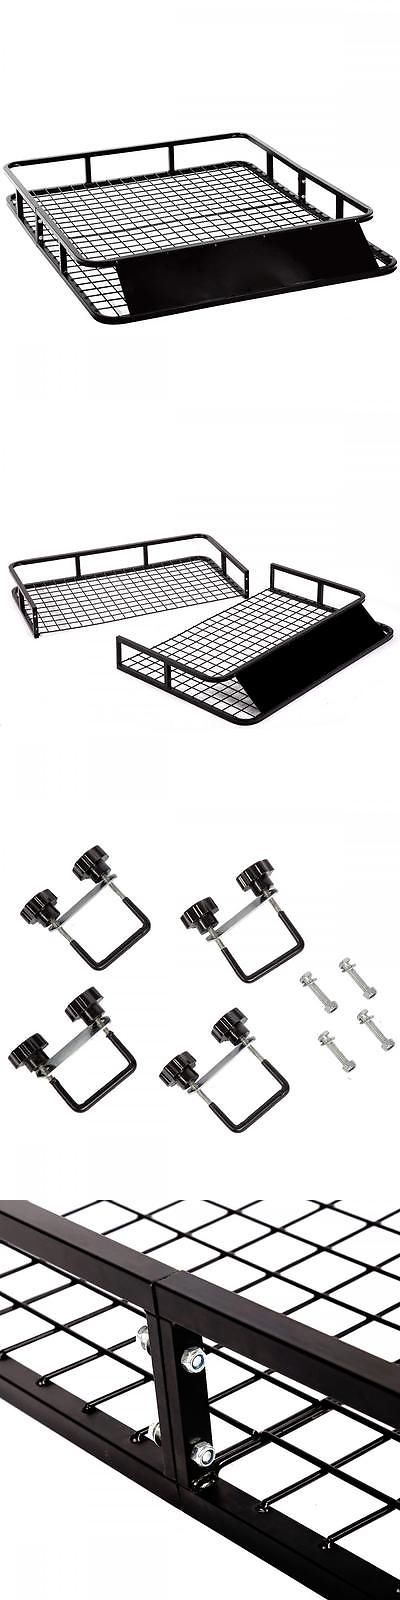 Racks and Carriers 21231: New Universal Roof Rack Basket Holder Travel Car Top Luggage Carrier Cargo BUY IT NOW ONLY: $86.95